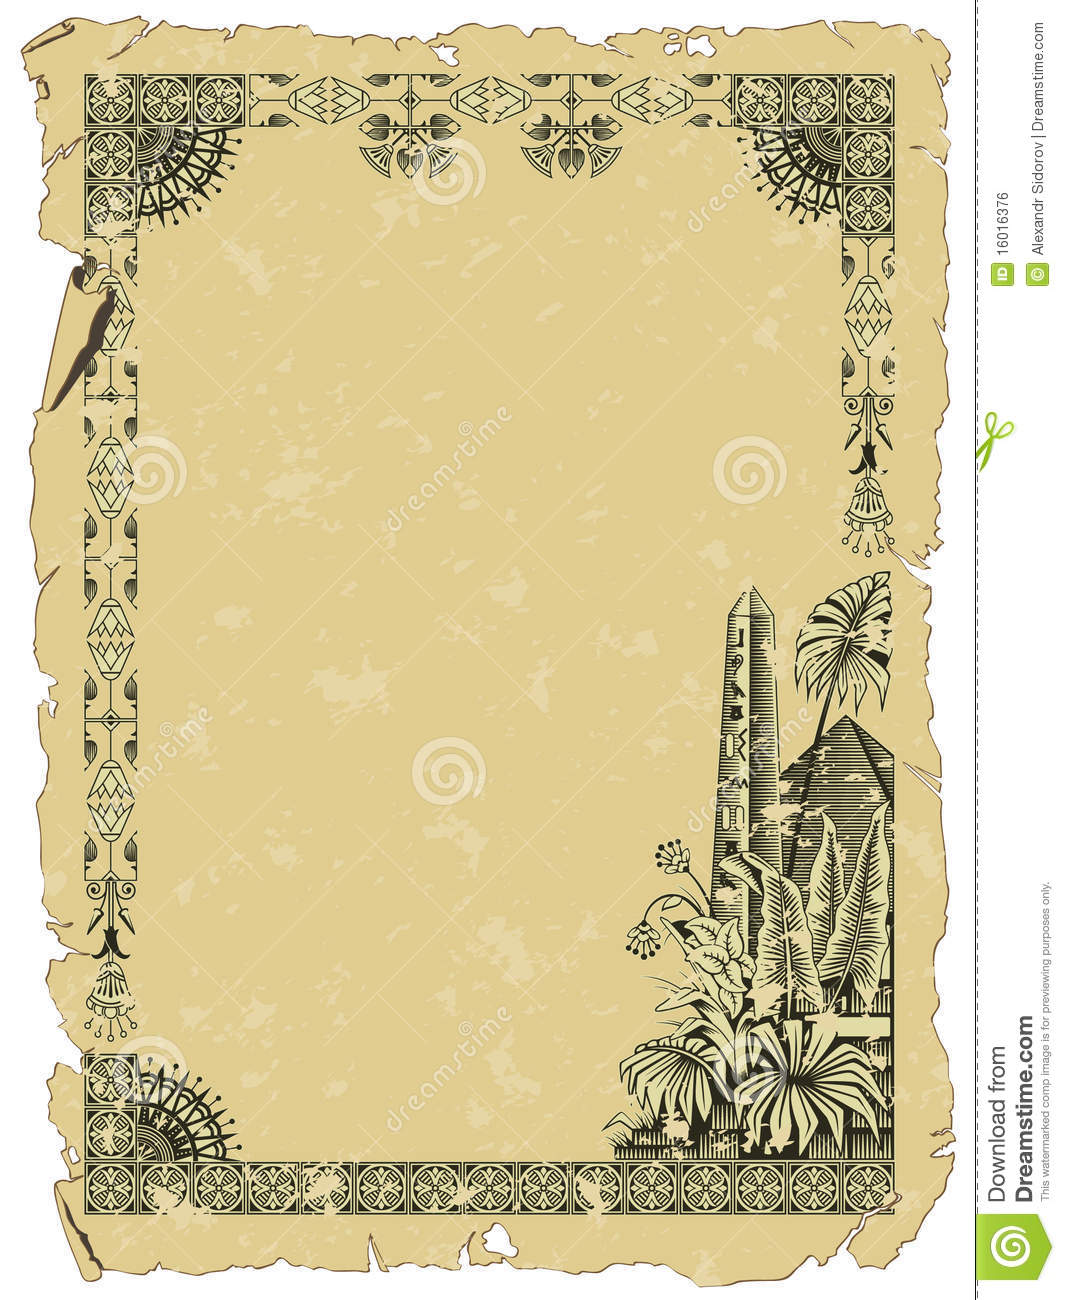 Vector Background Ancient Egypt Royalty Free Stock Image   Image